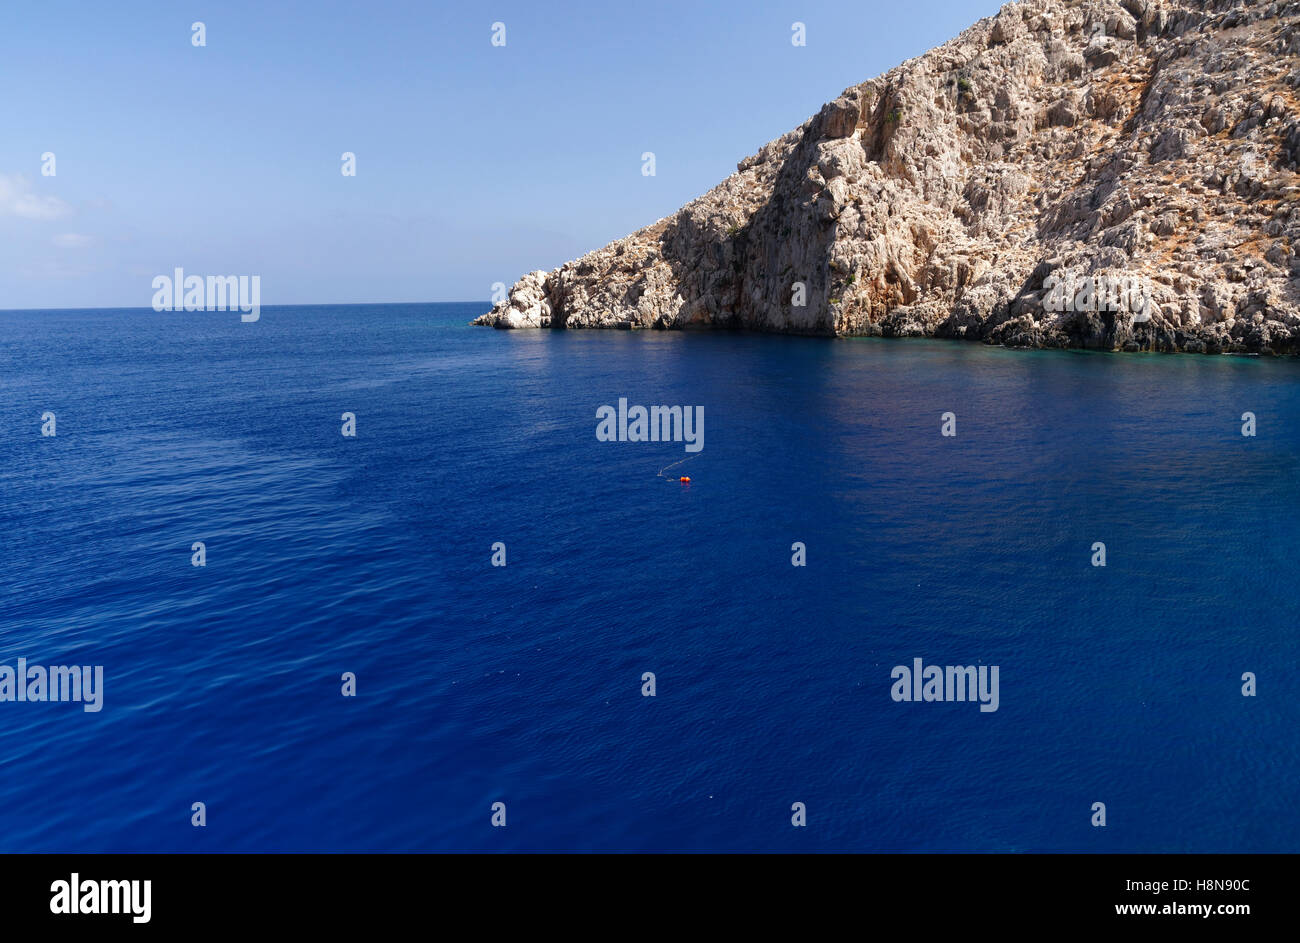 Cape Mirtos, Chalki Island near Rhodes, Dodecanese Islands, Greece. - Stock Image